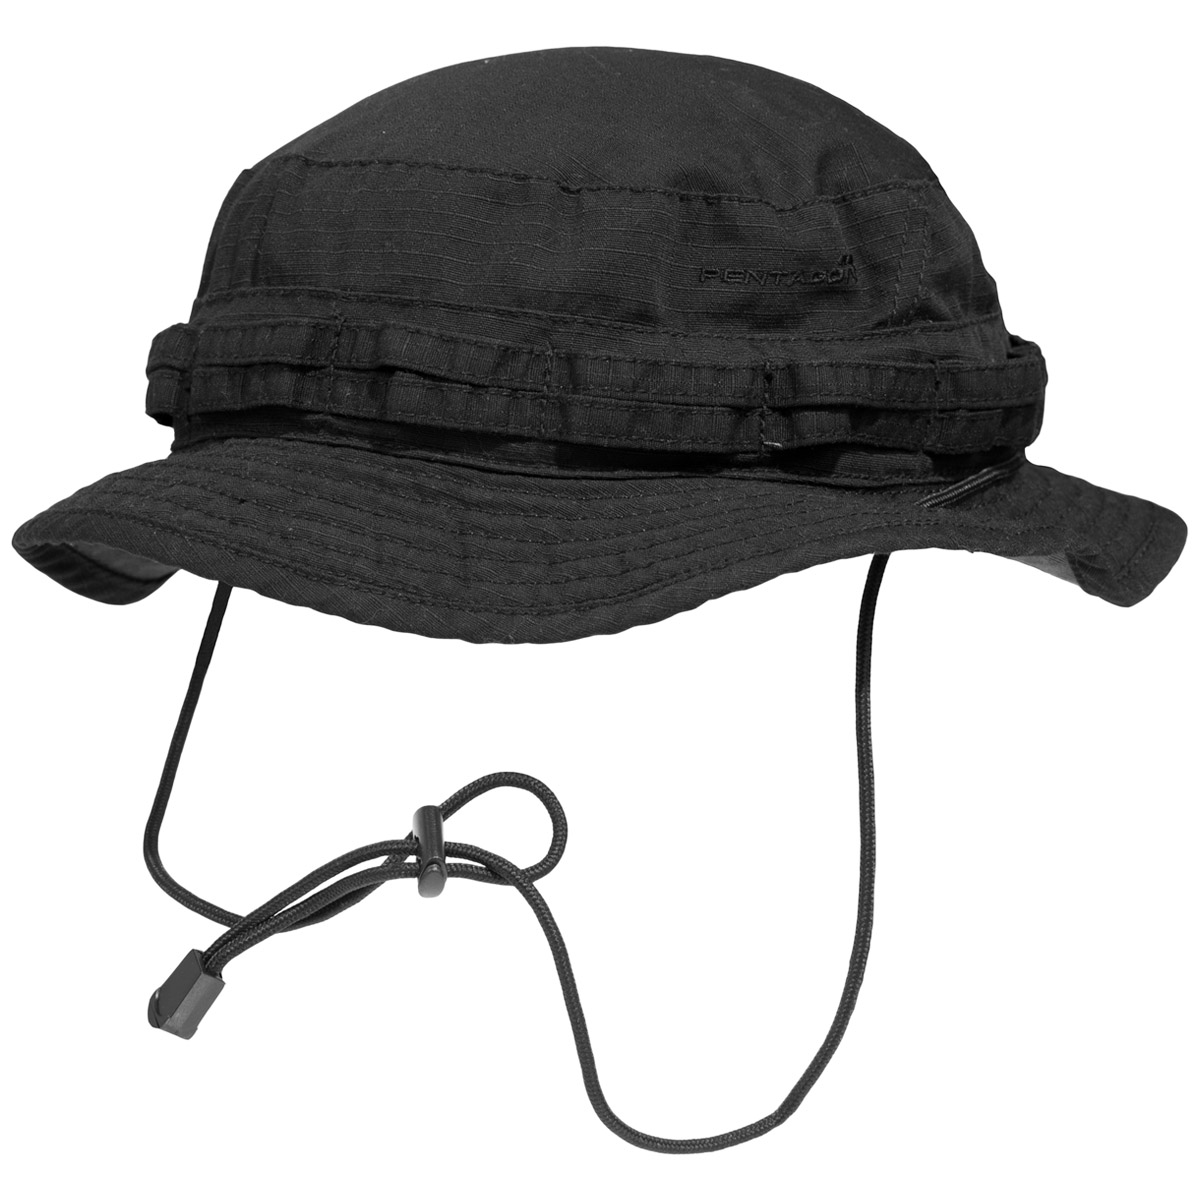 Details about Pentagon Babylon Boonie Hat Tactical Combat Jungle Hat Outdoor  Head Cover Black 26beae6212ca